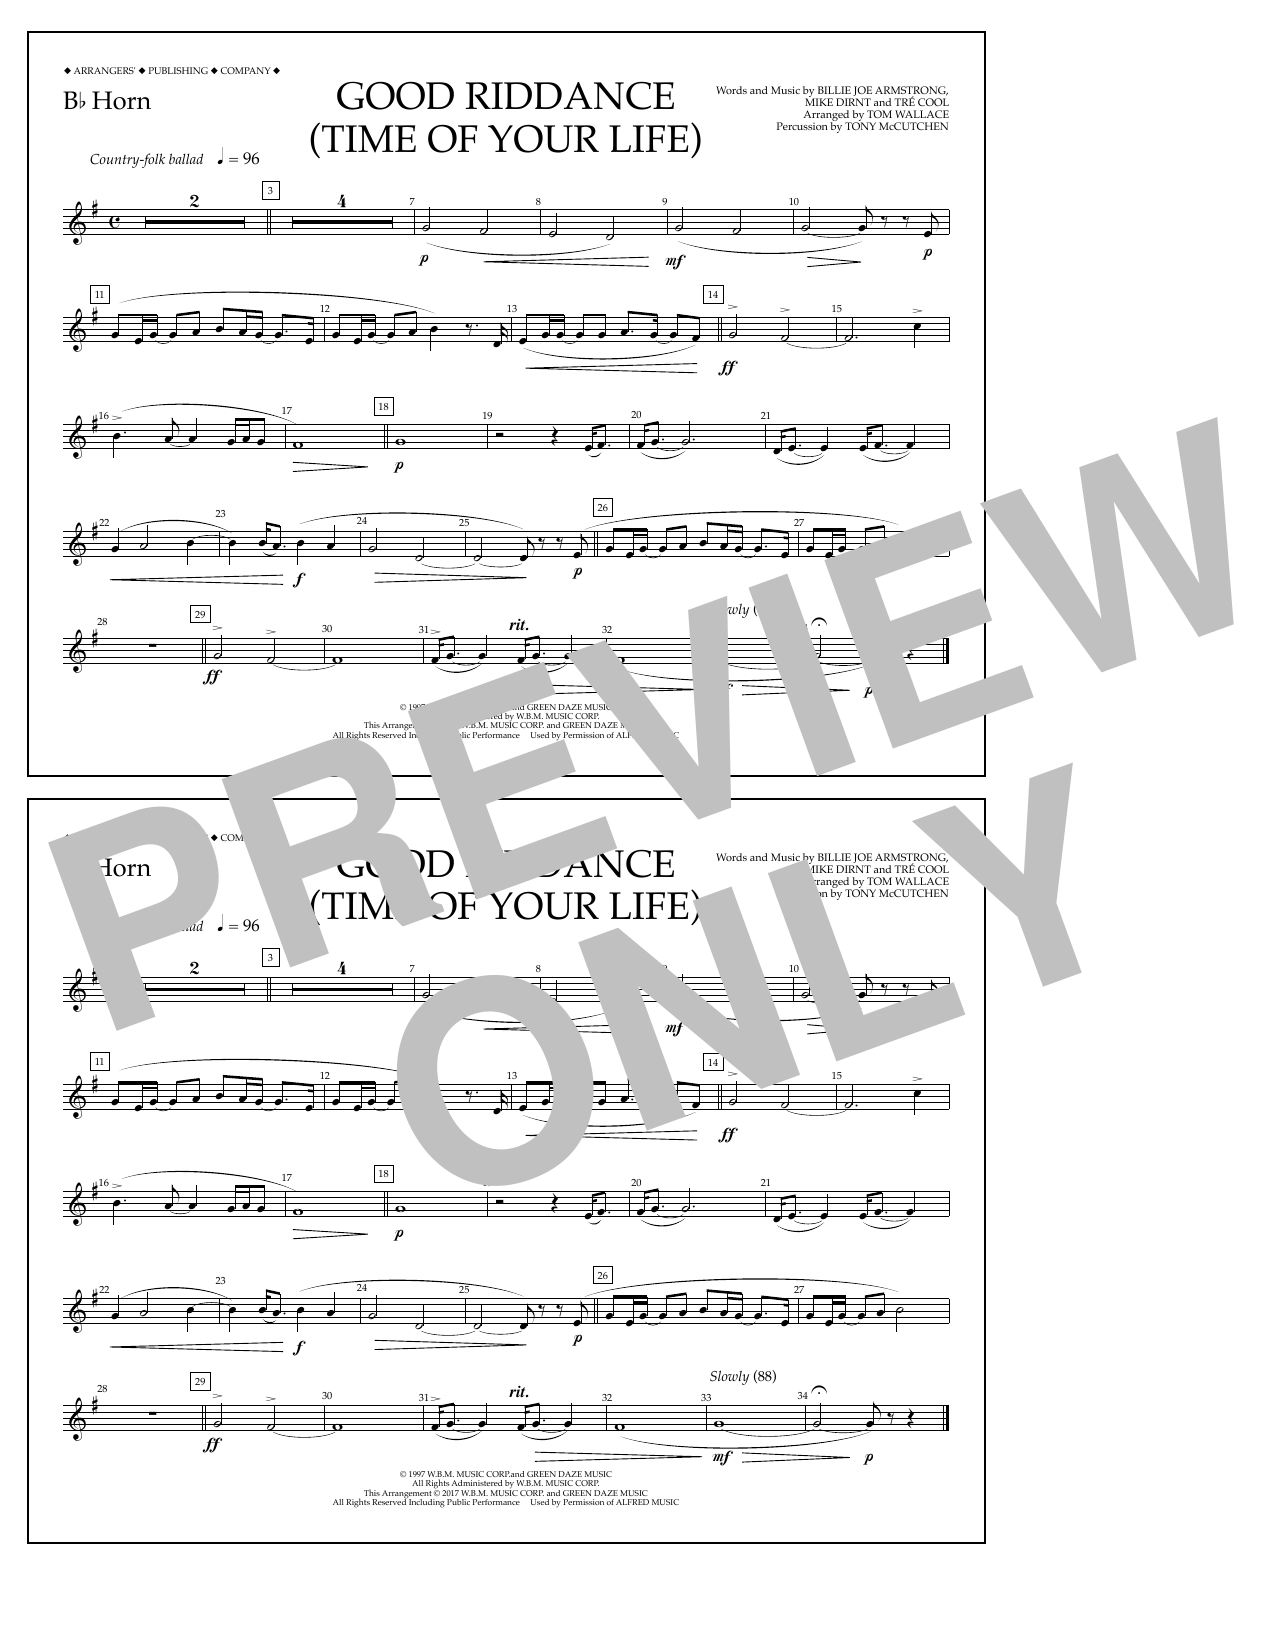 Good Riddance (Time of Your Life) - Bb Horn Sheet Music